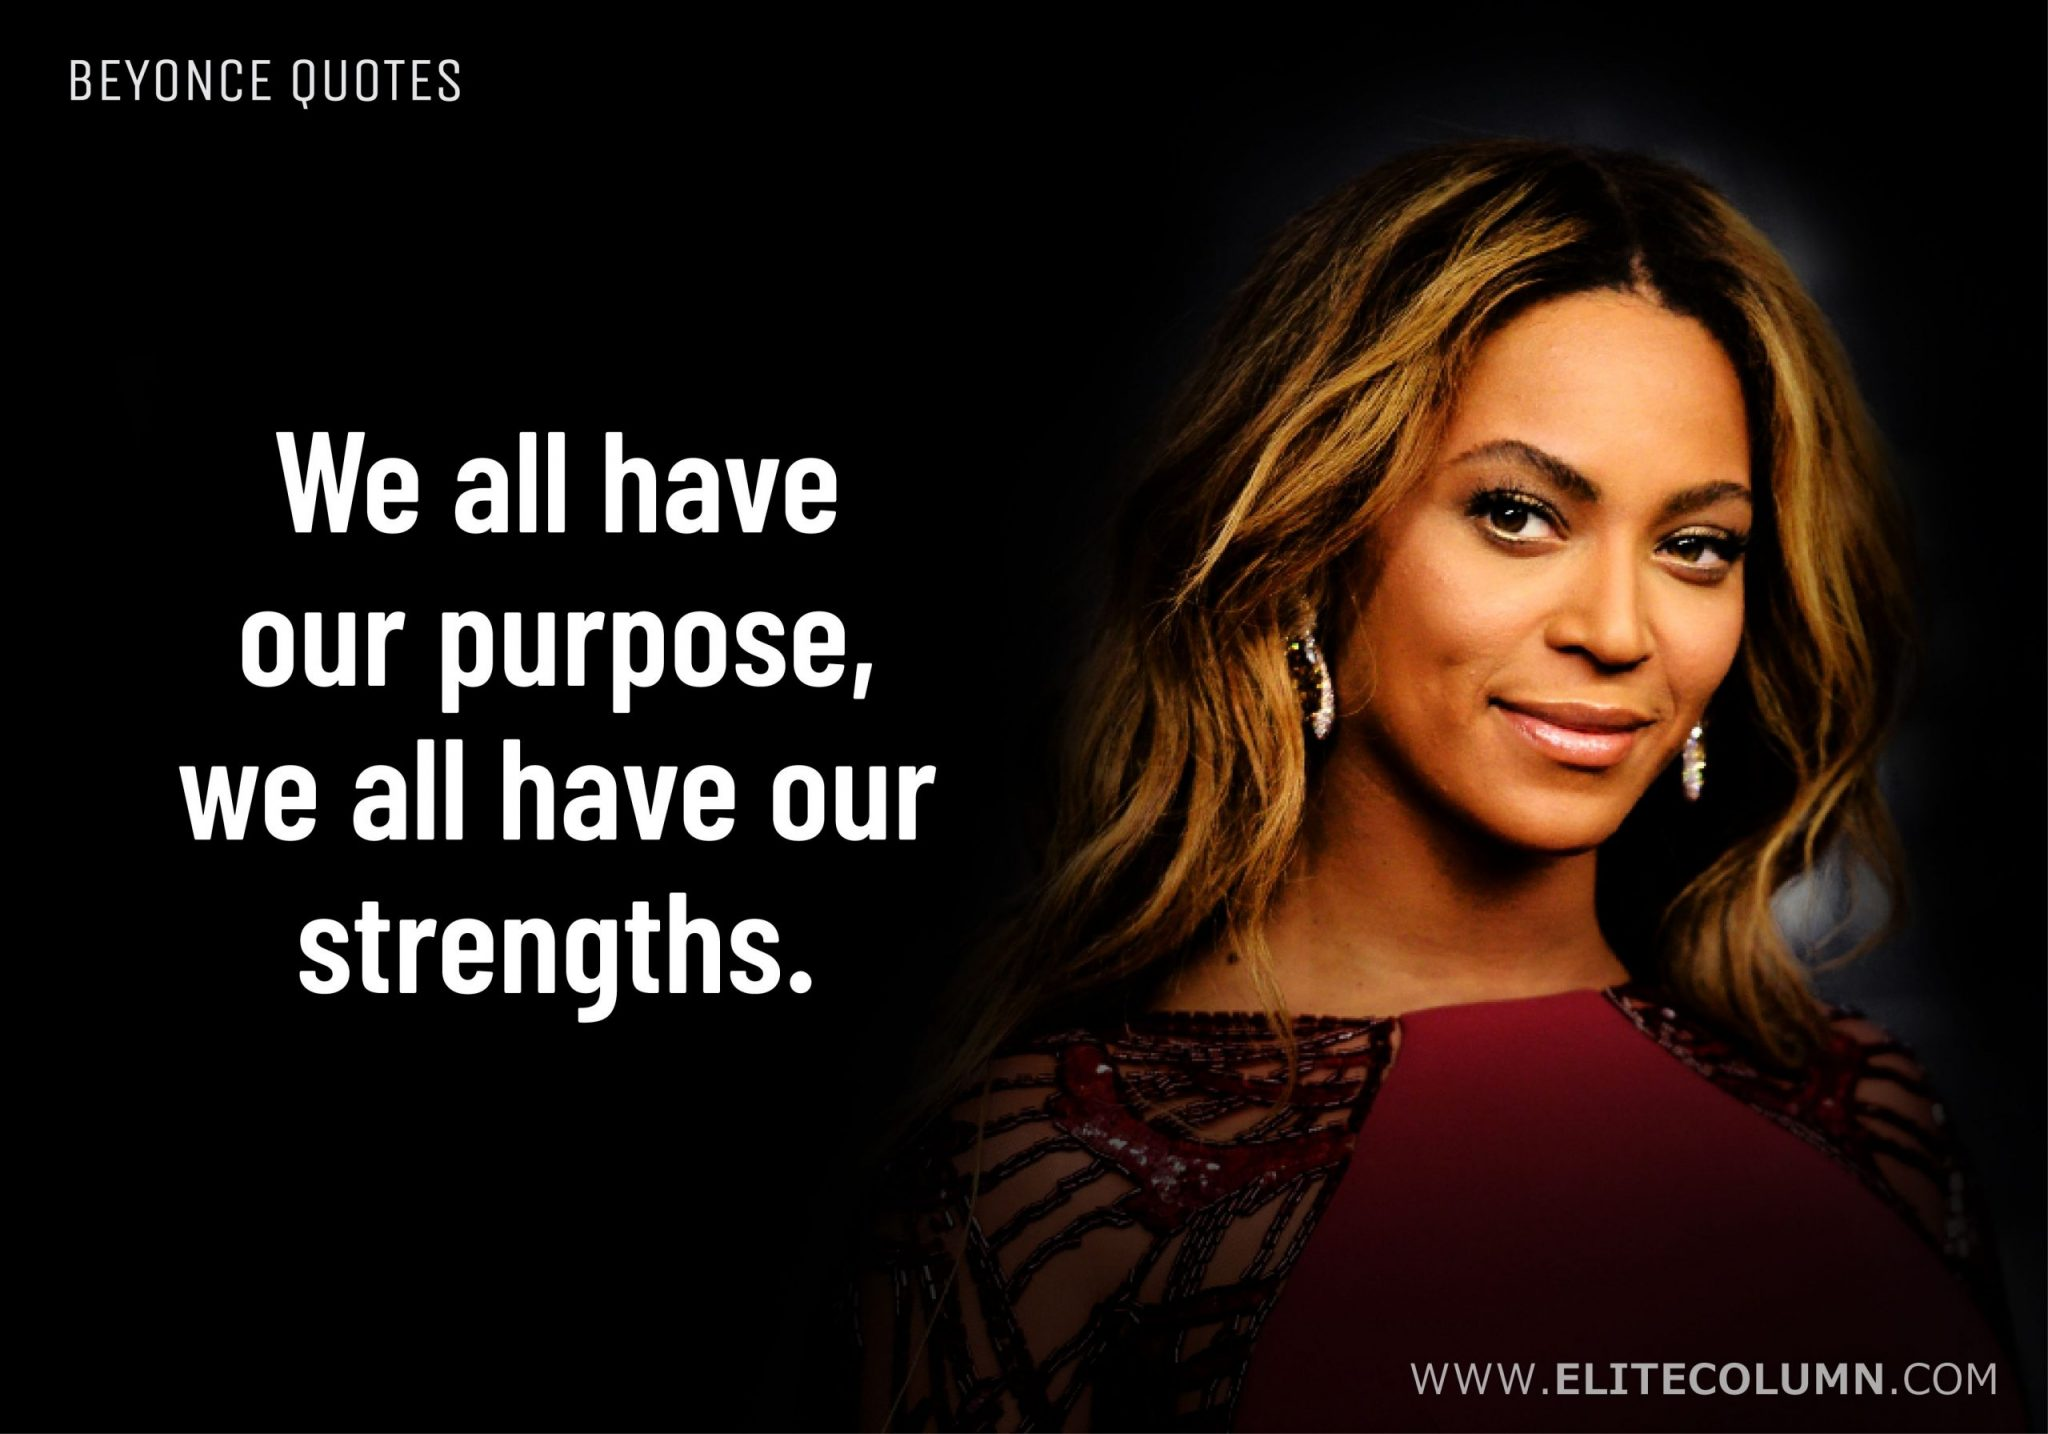 Beyonce Quotes (11)